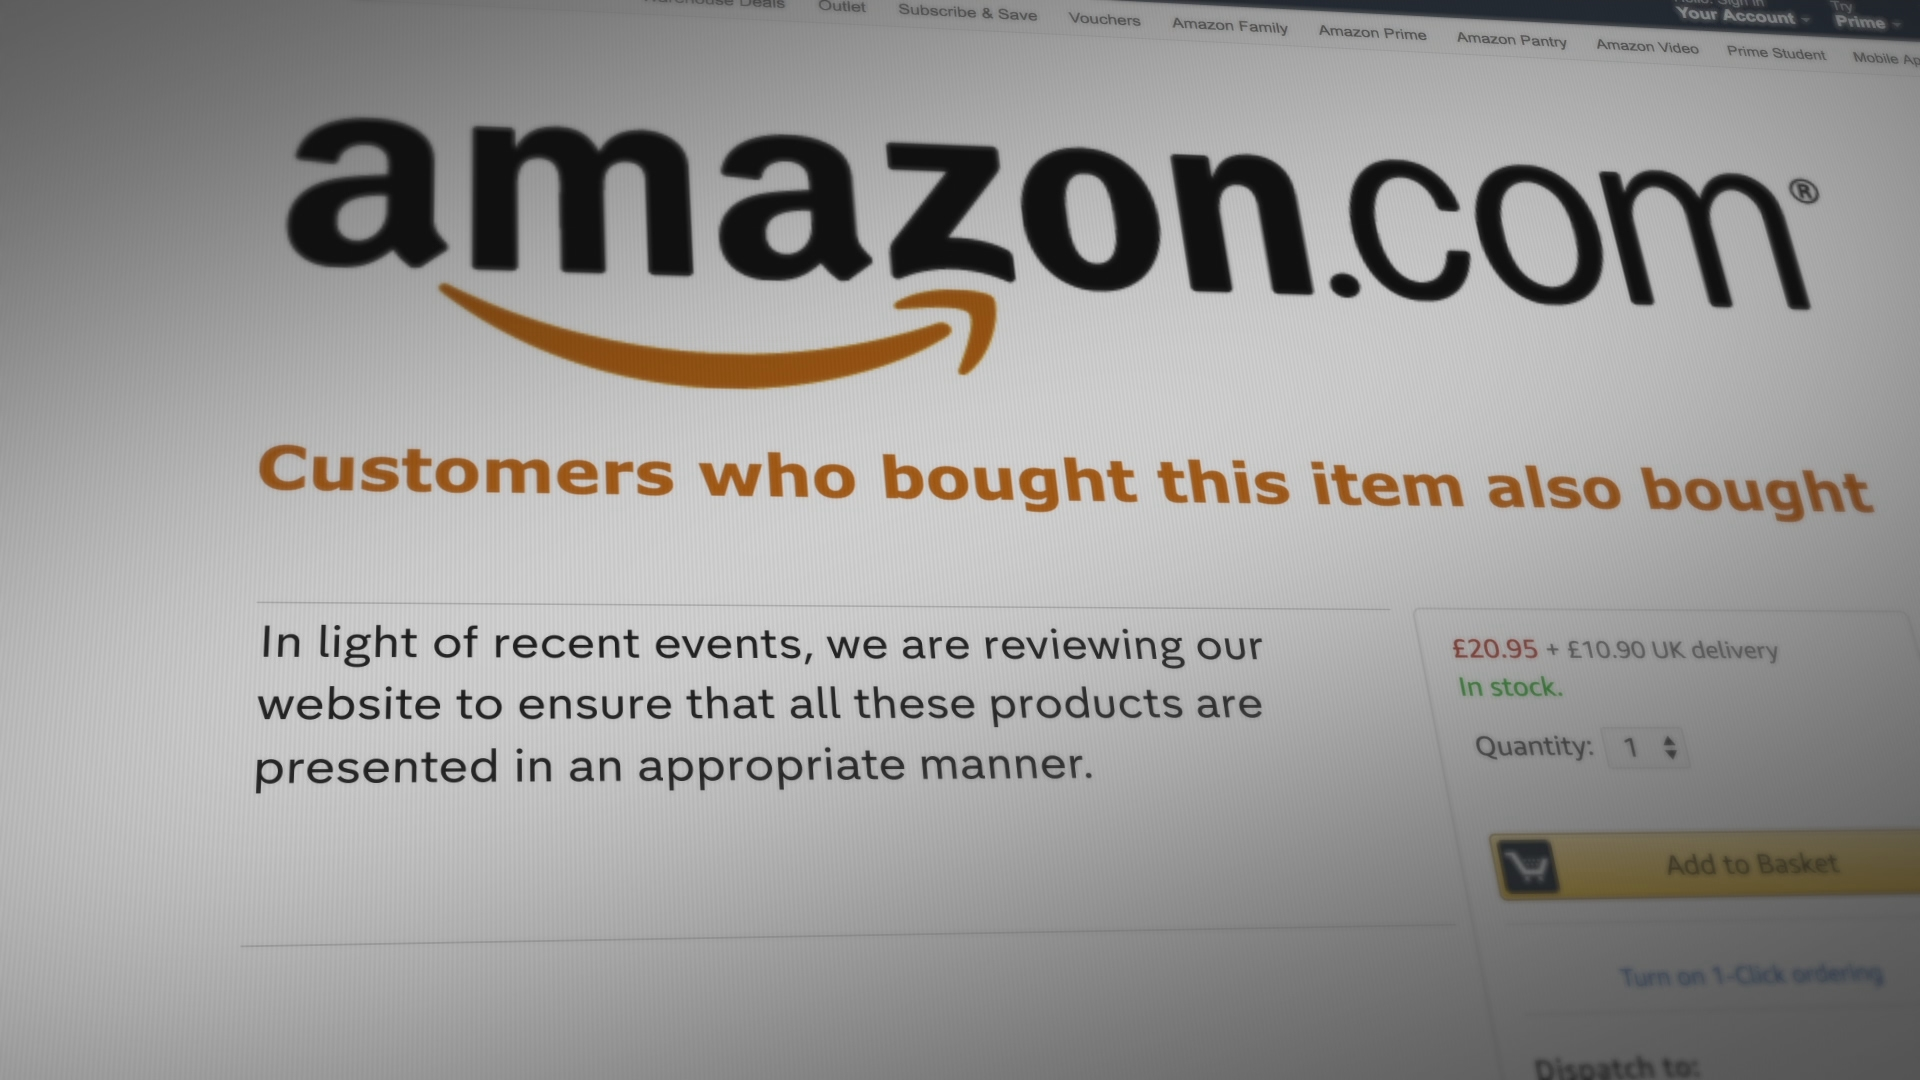 Amazon reviews website after Channel 4 News bomb-making investigation